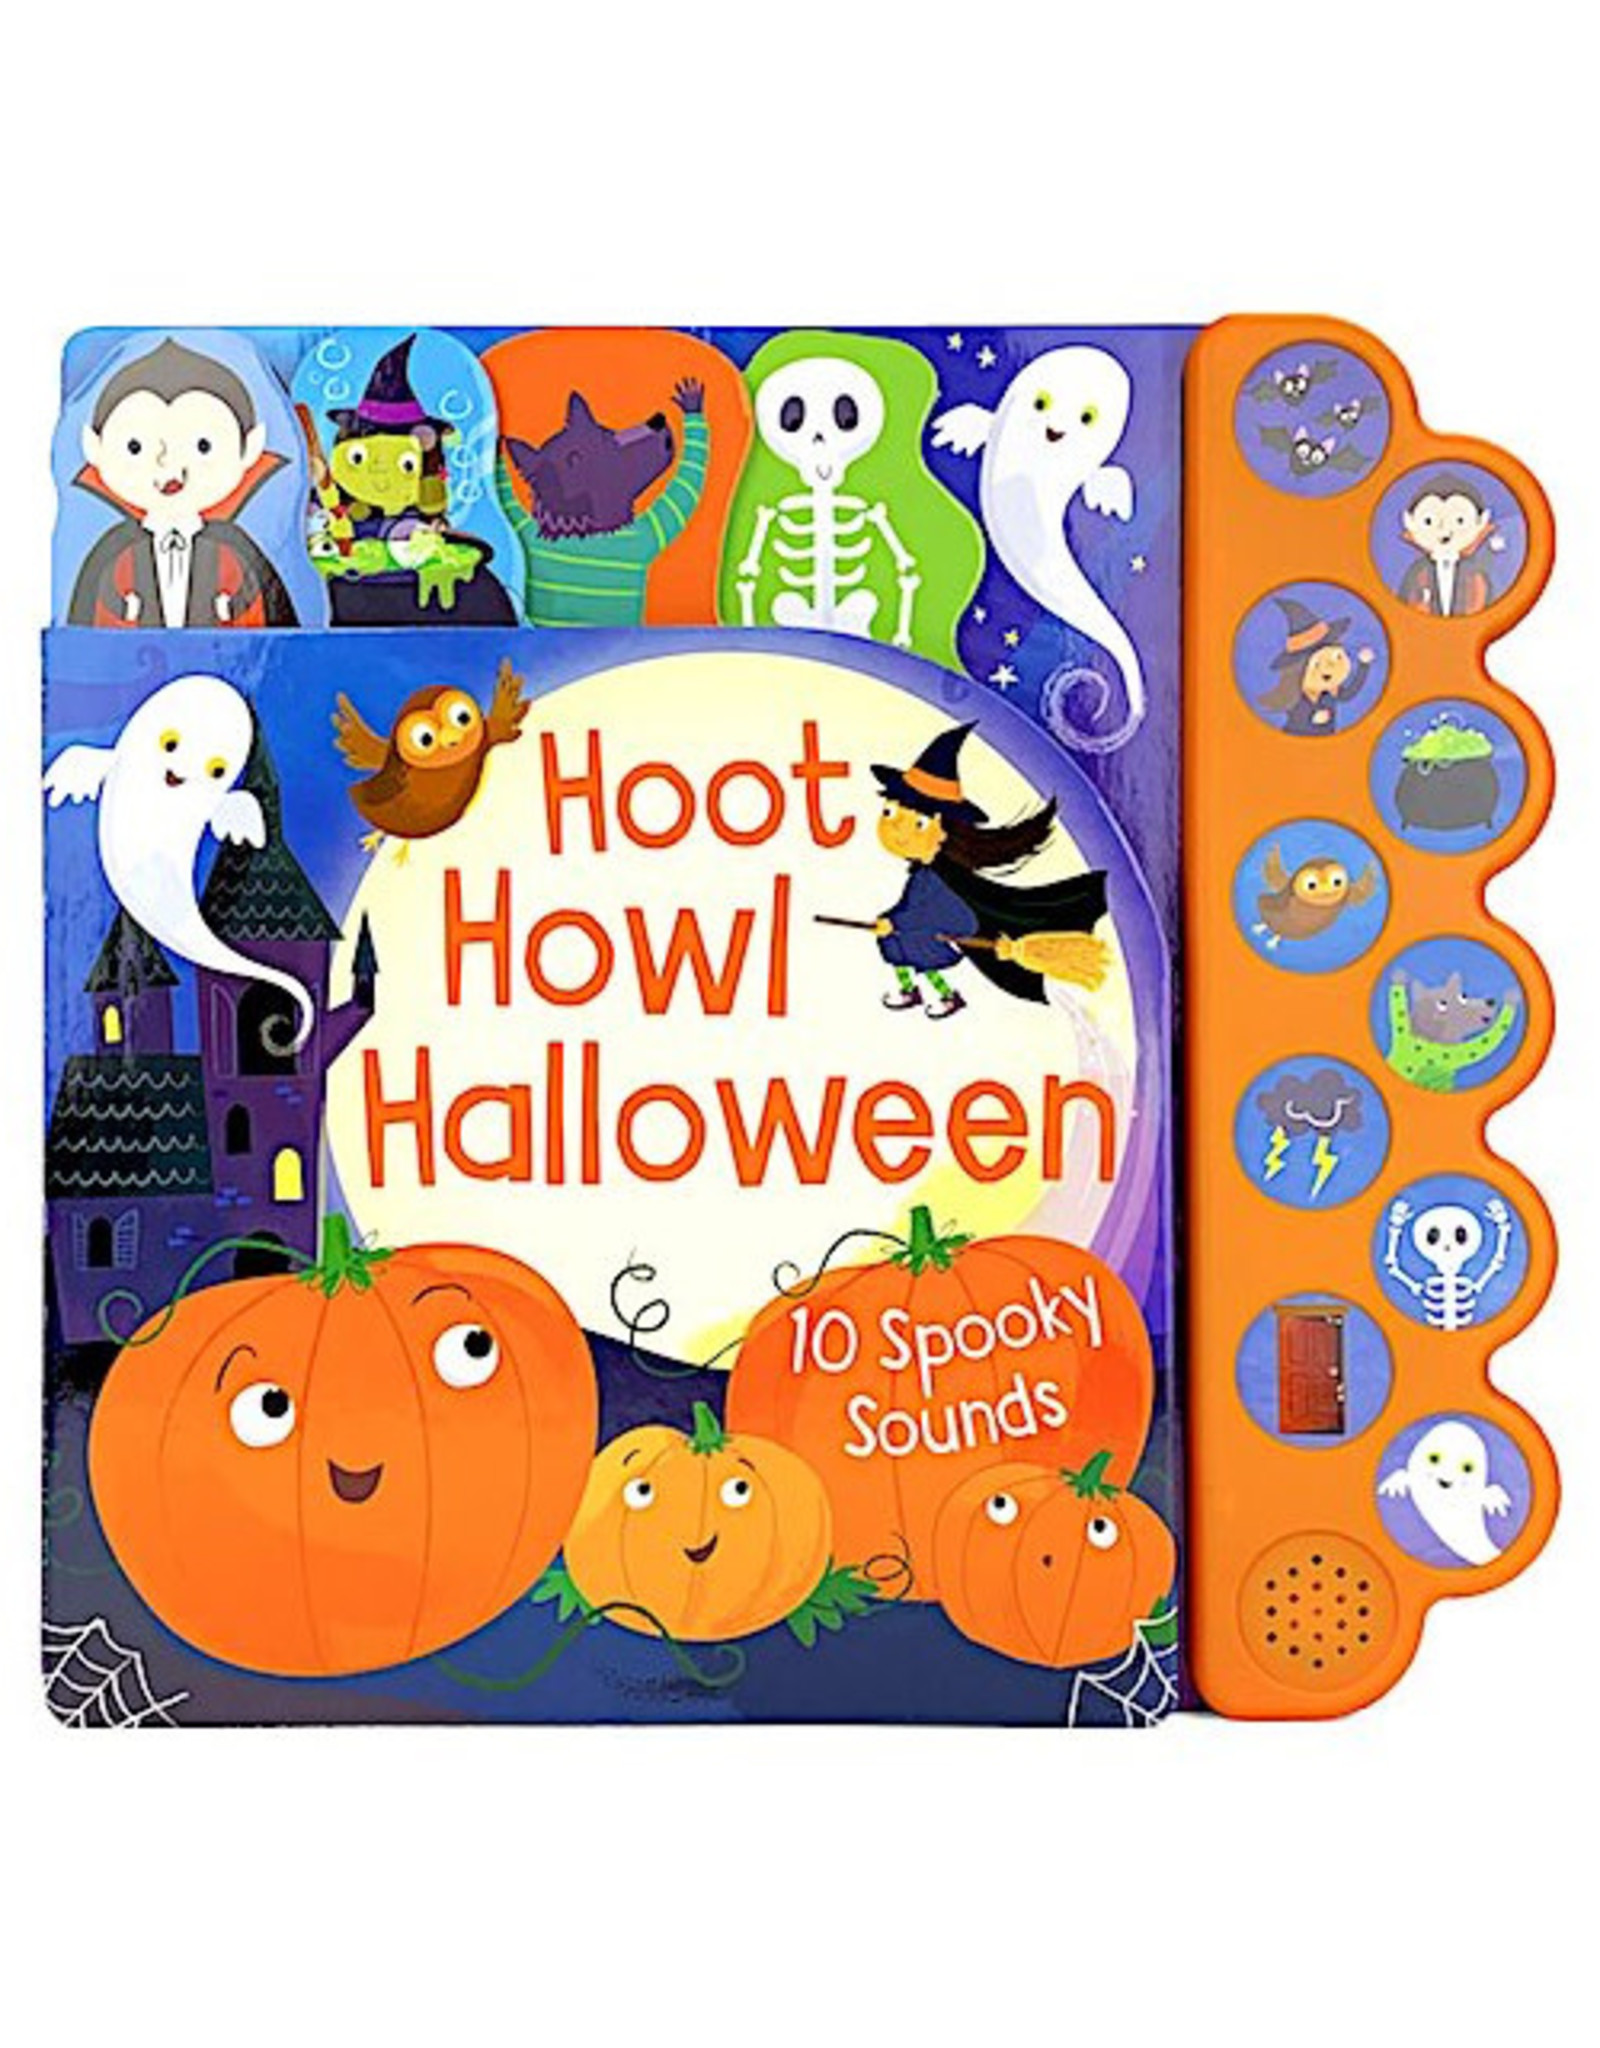 Cottage Door Press Hoot Howl Halloween